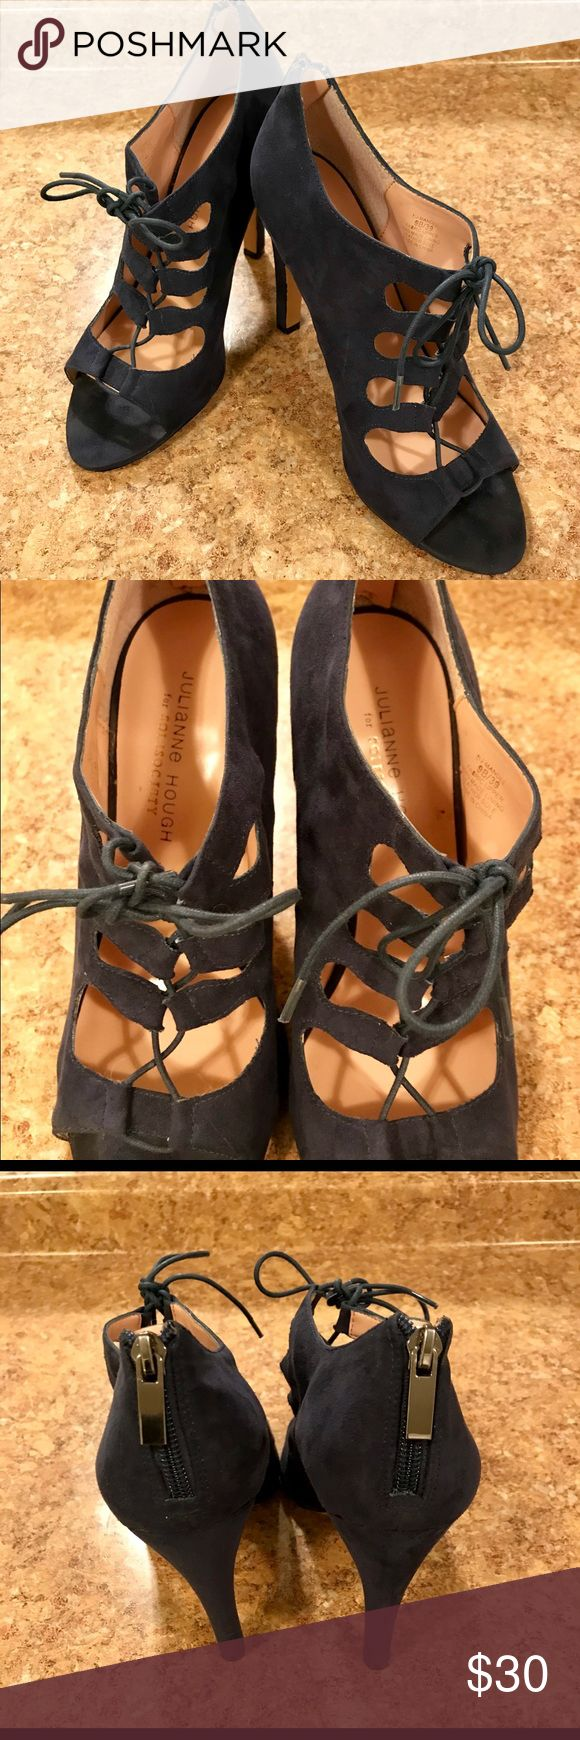 "Julianne Hough ""Mandee"" Heels Blue suede heels with lace up detail. Around a 4 inch heel with some marks on suede and the bottom of the heels. Sole Society Shoes Heels"